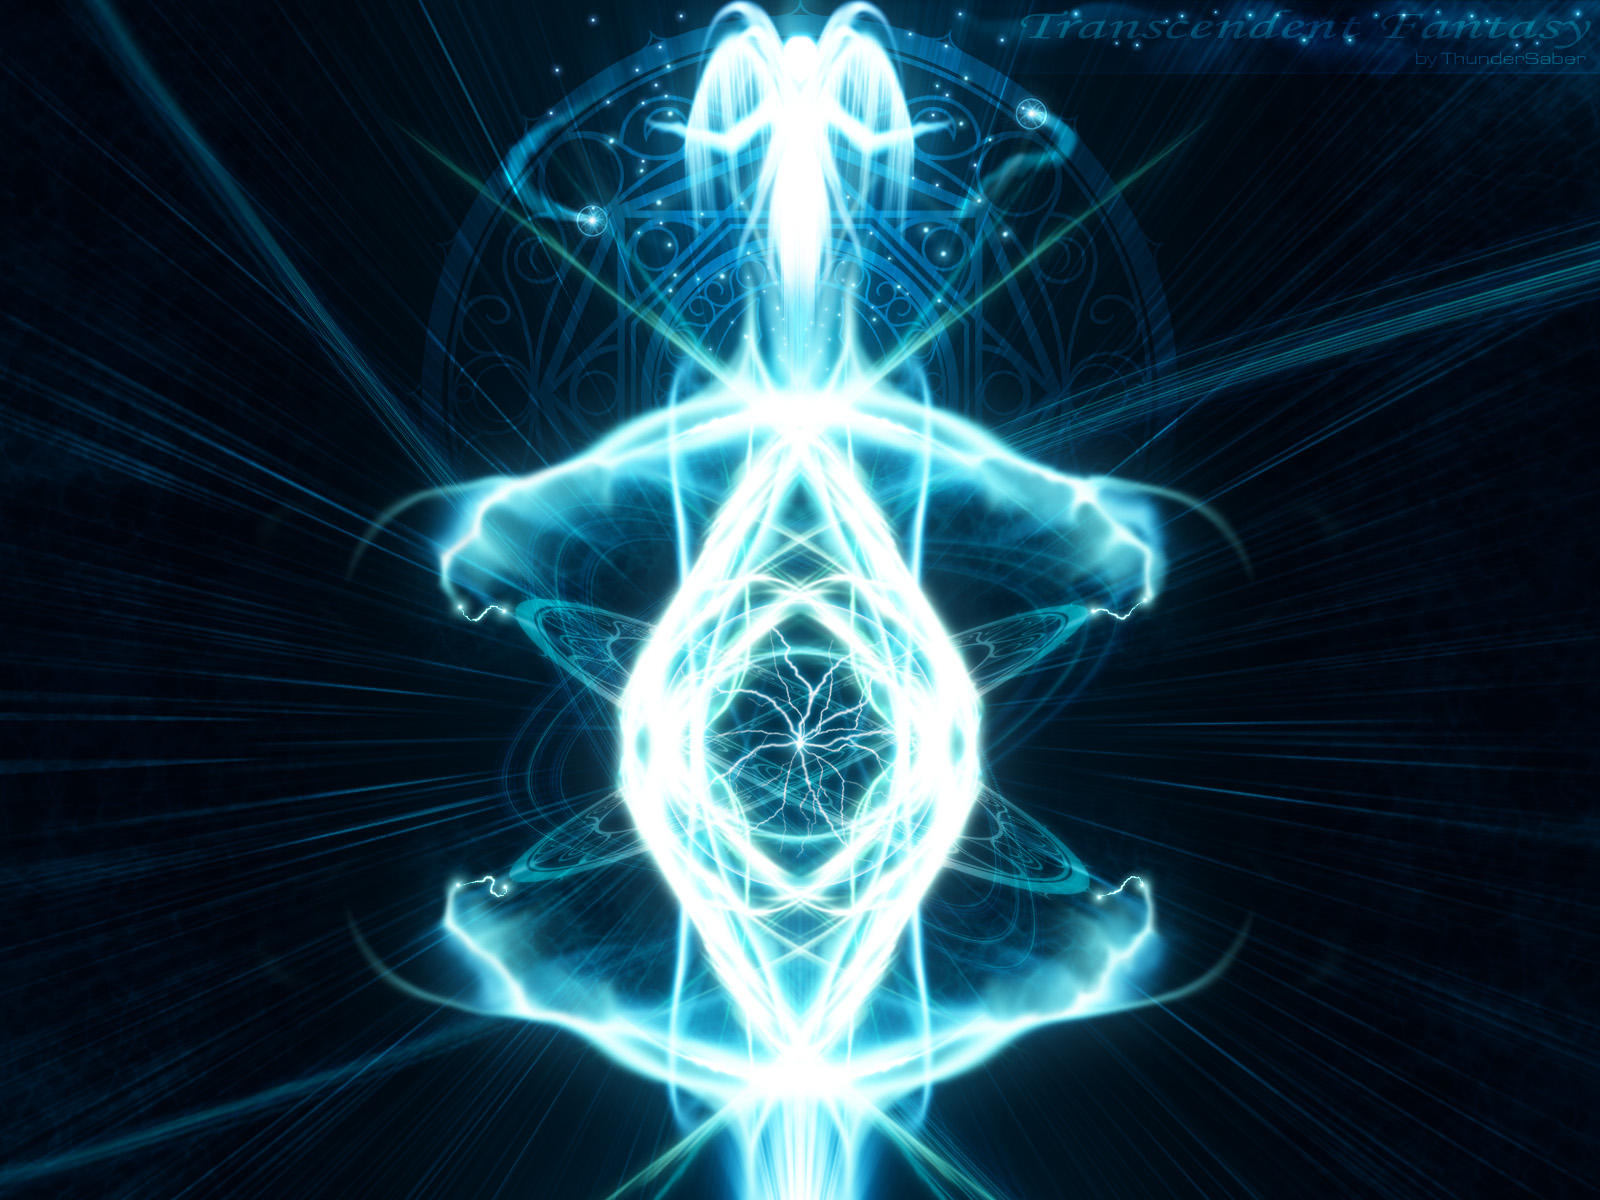 concept of the transcendent the The quantum scientific concept of the oppositions of matter and anti-matter, and   transcendent within a more appropriate understanding of secular modernity.